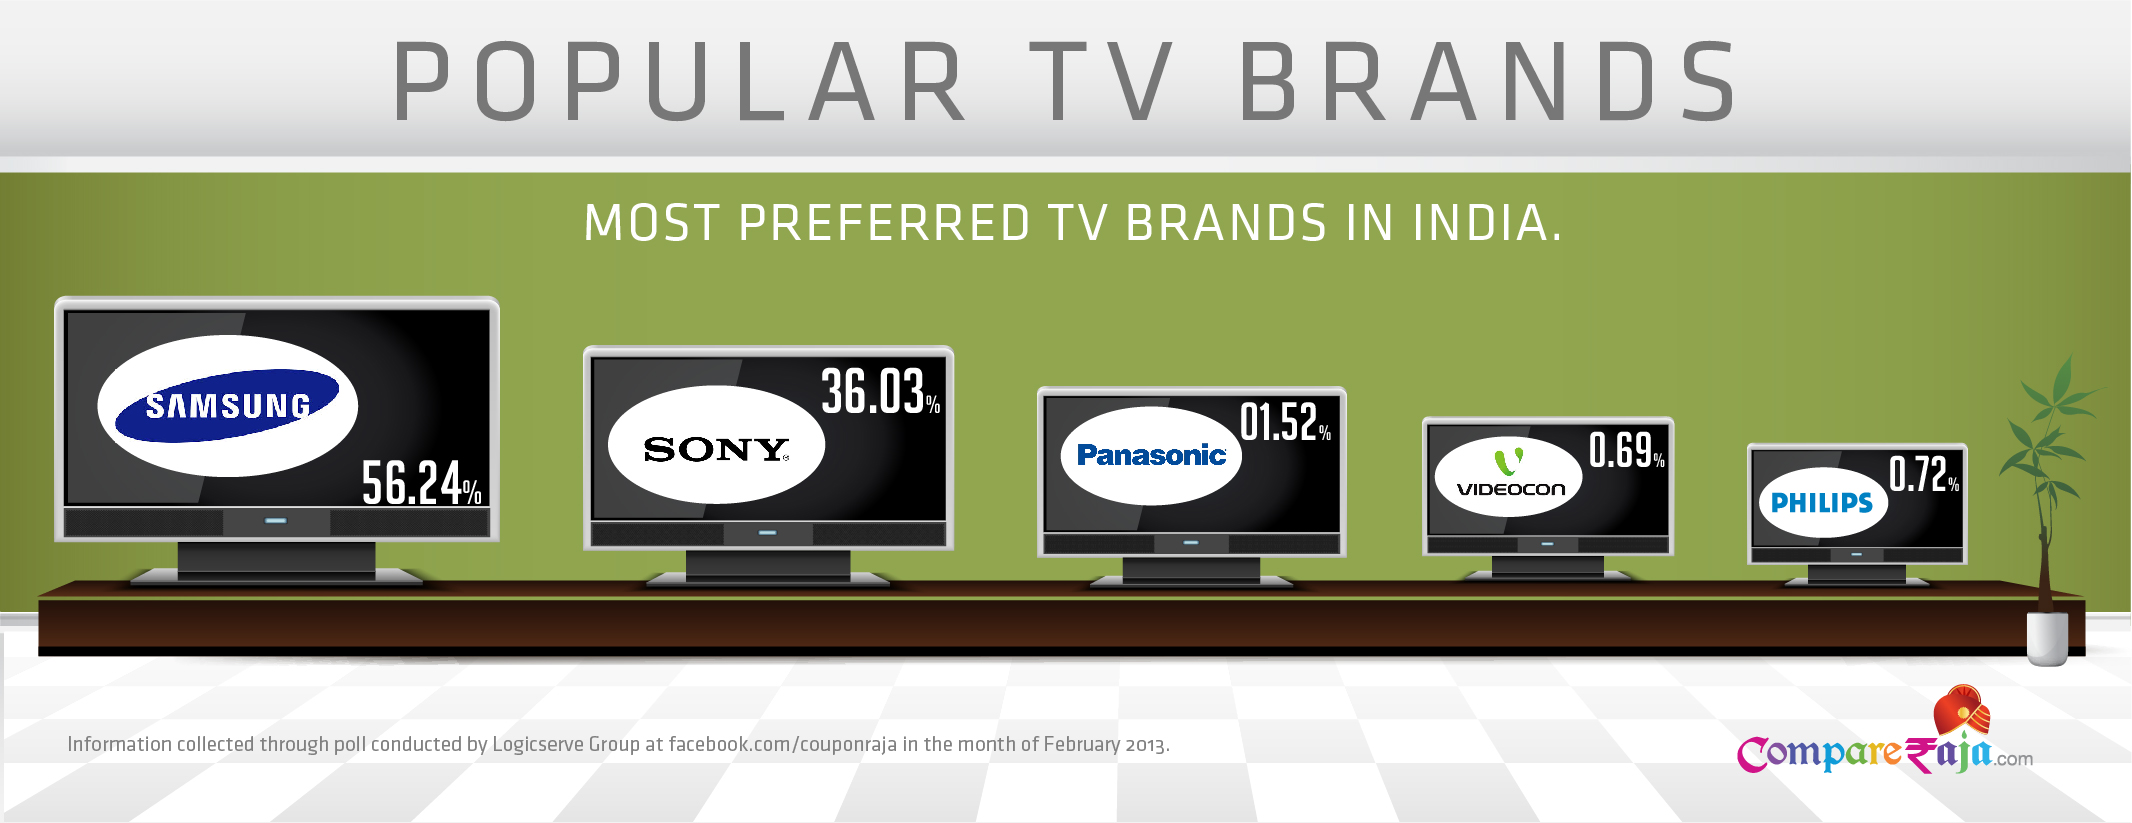 Highly Preferred Television Brands in India